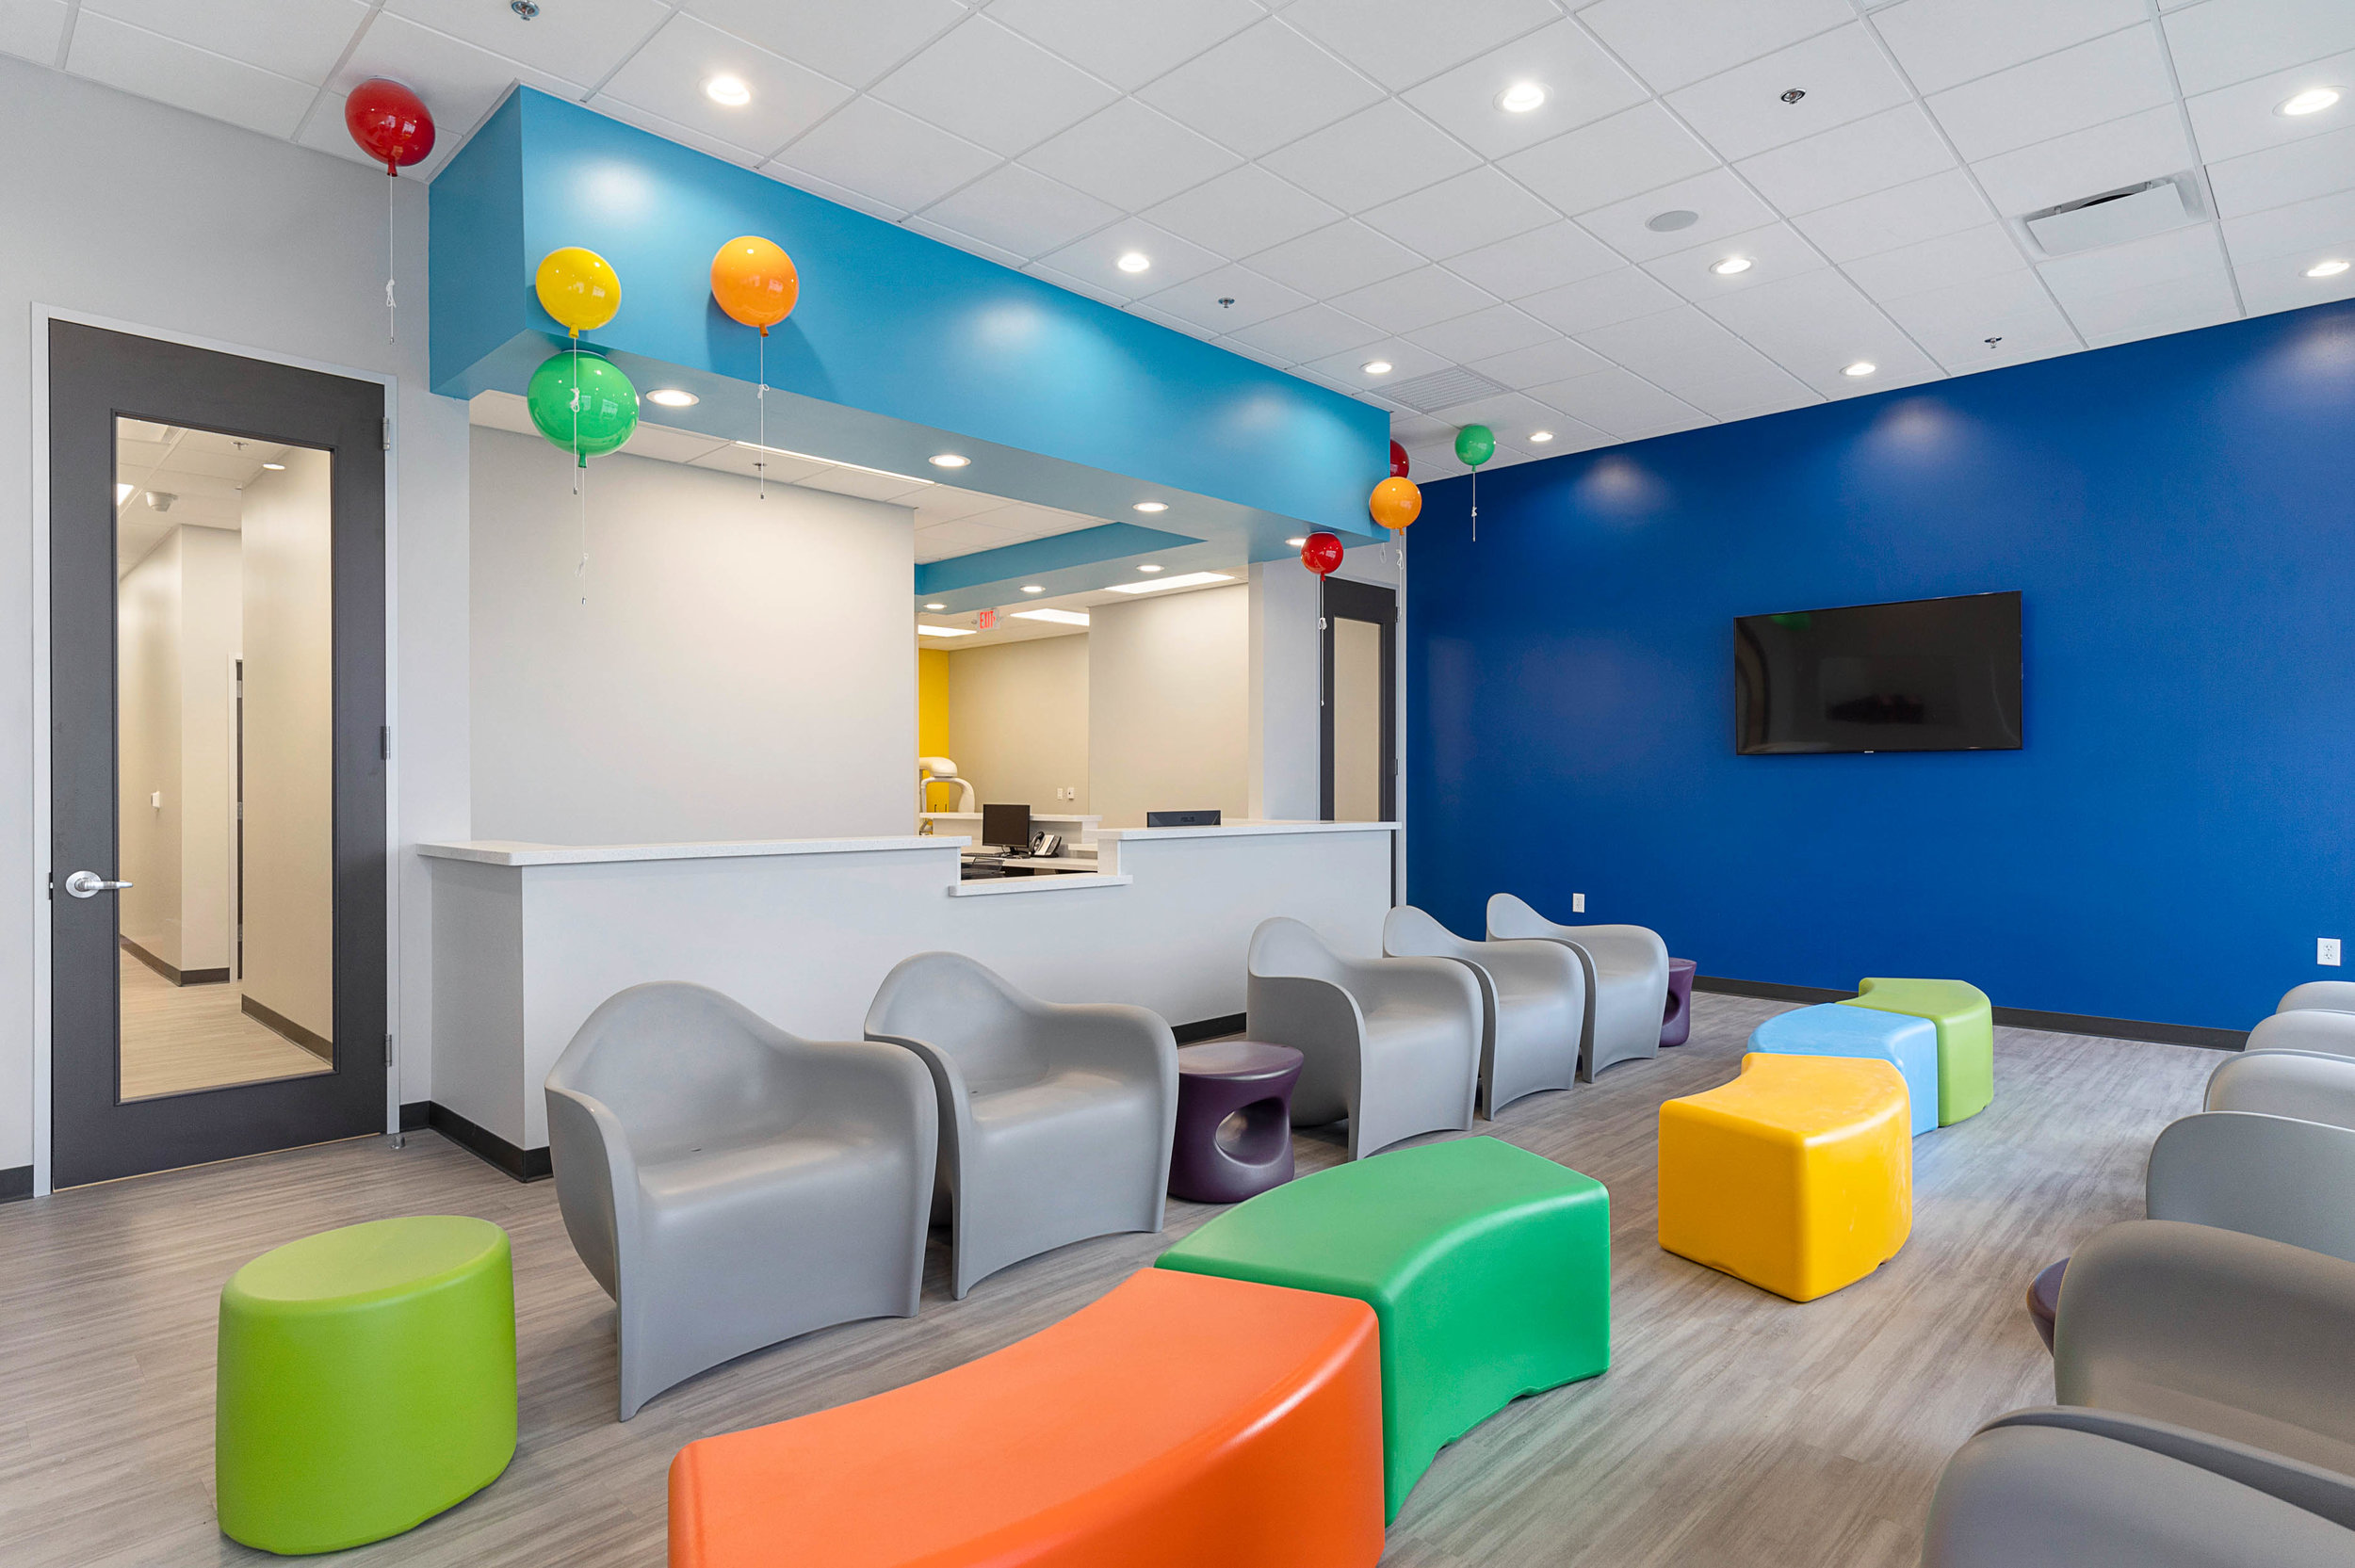 PEDIATRIC DENTIST WAITING ROOM HOUSTON TEXAS 77022.jpg